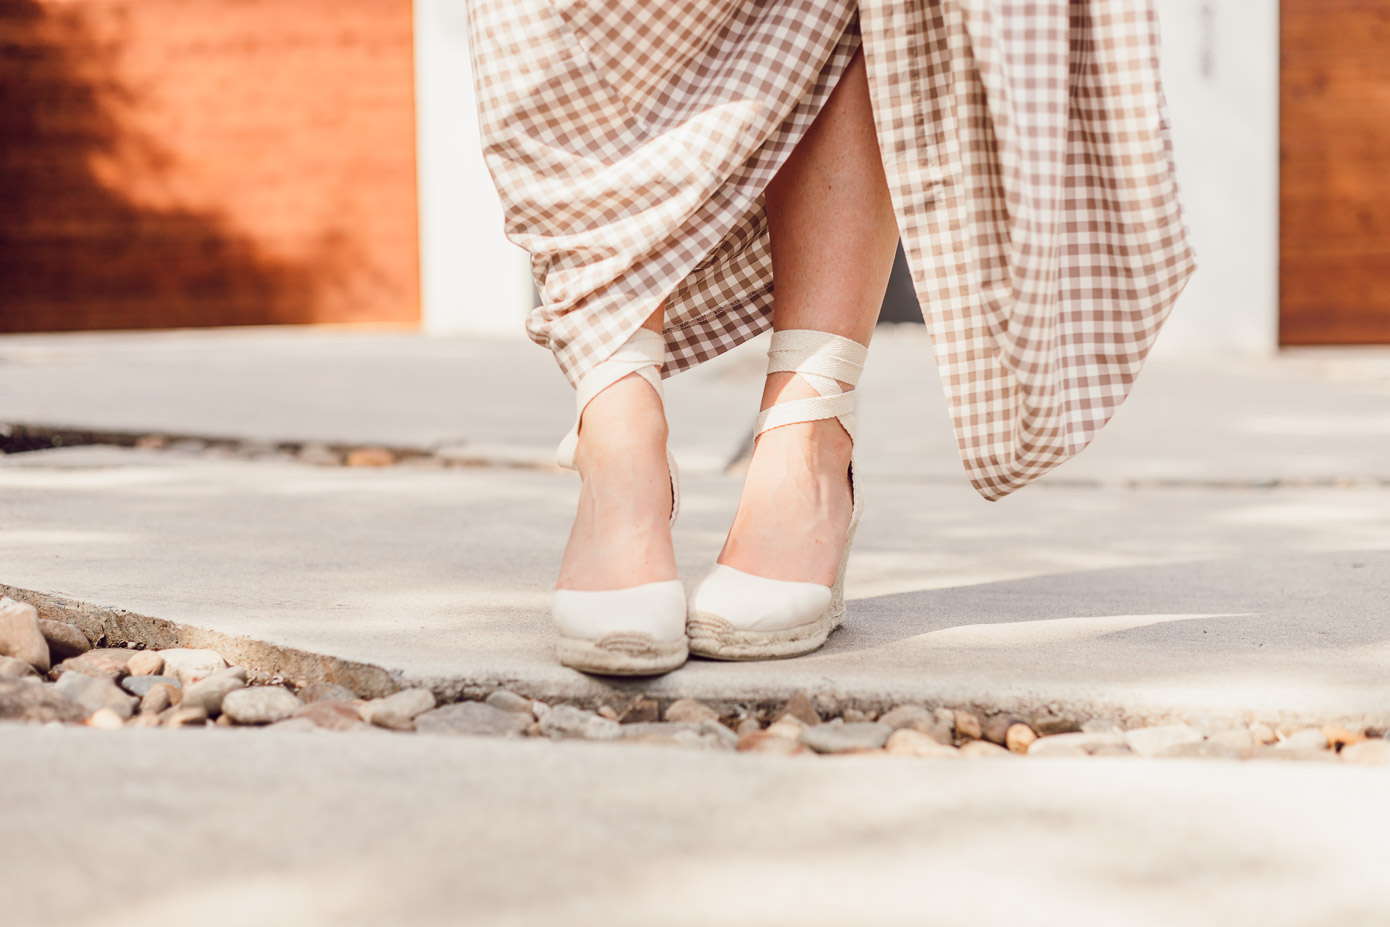 Soludos Lace Up Espadrille Wedges - A Summer Gingham Maxi Skirt styled by Laura Leigh of Louella Reese #maxiskirt #gingham #southernstyle